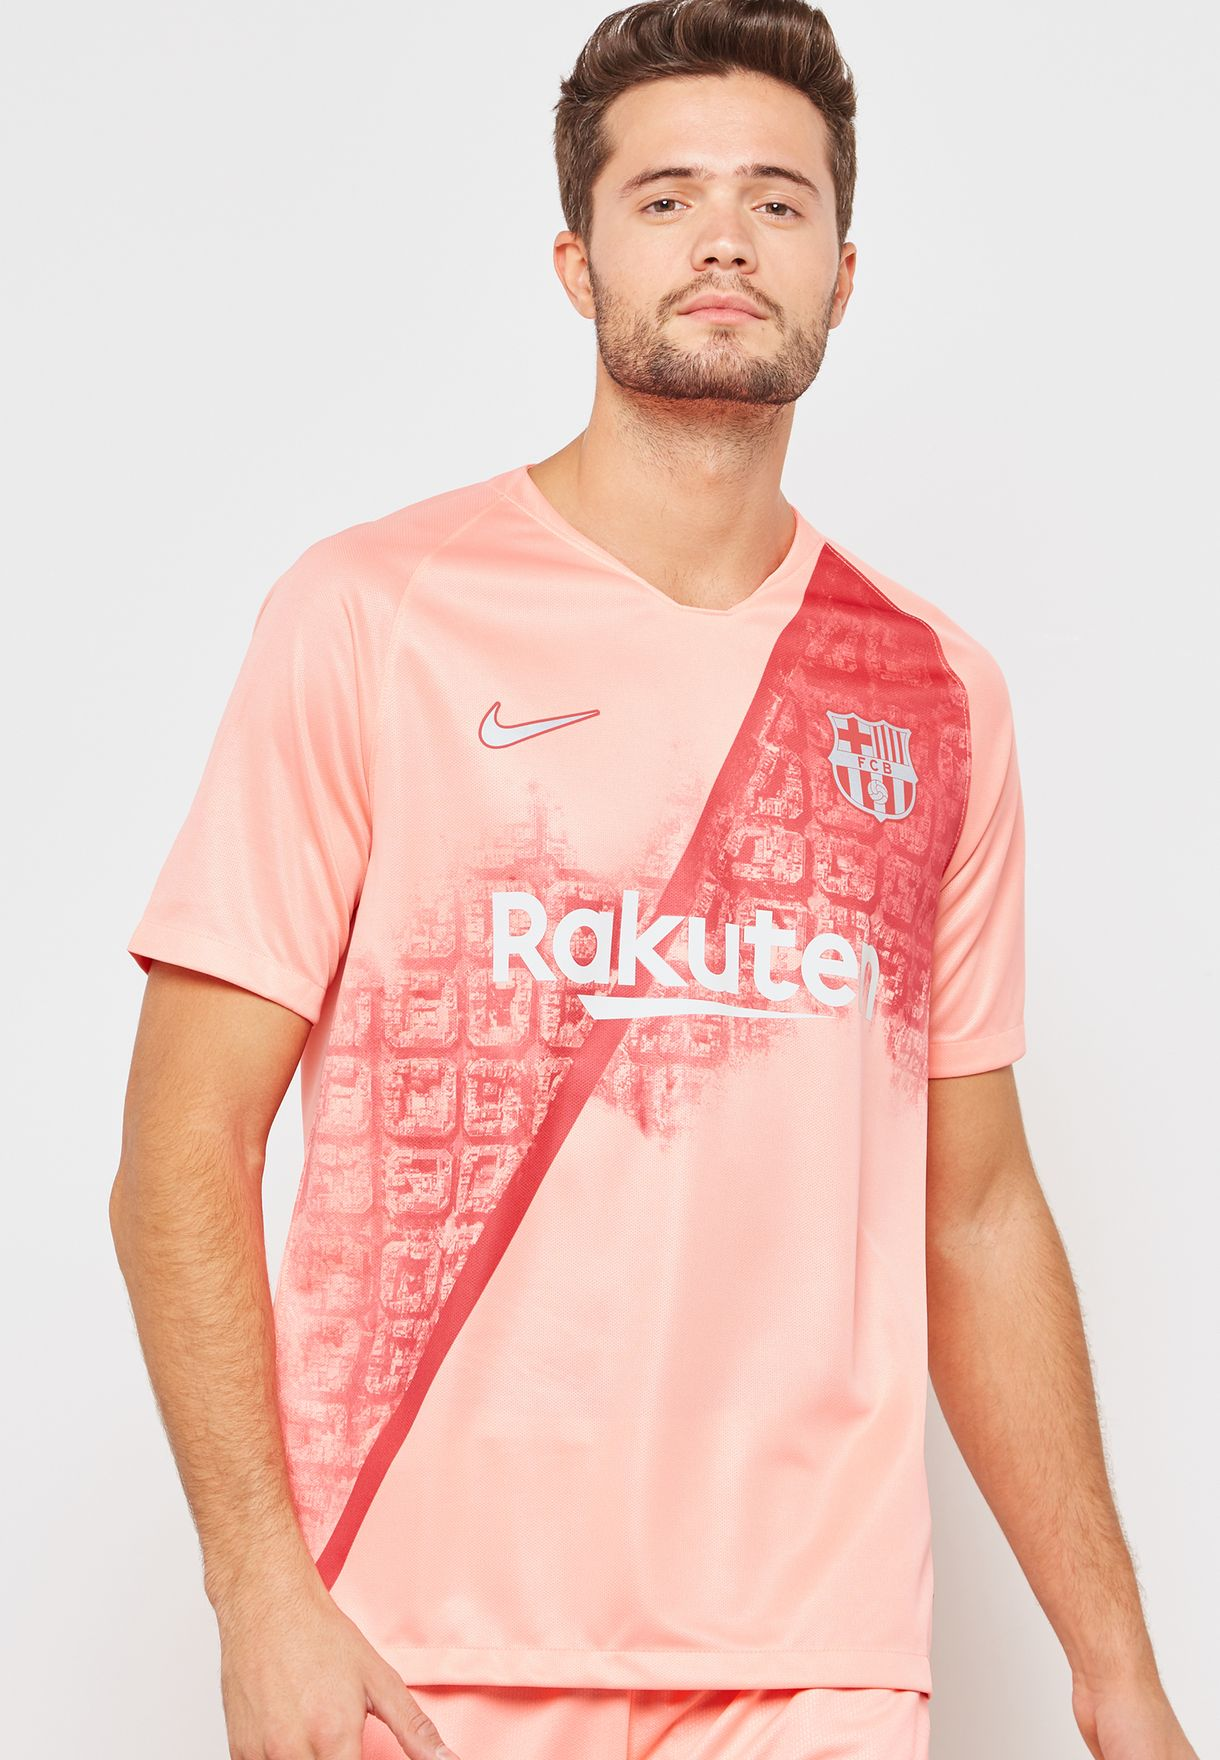 35a3770f2 Shop Nike pink FC Barcelona 18 19 3rd Jersey 918989-694 for Men in ...